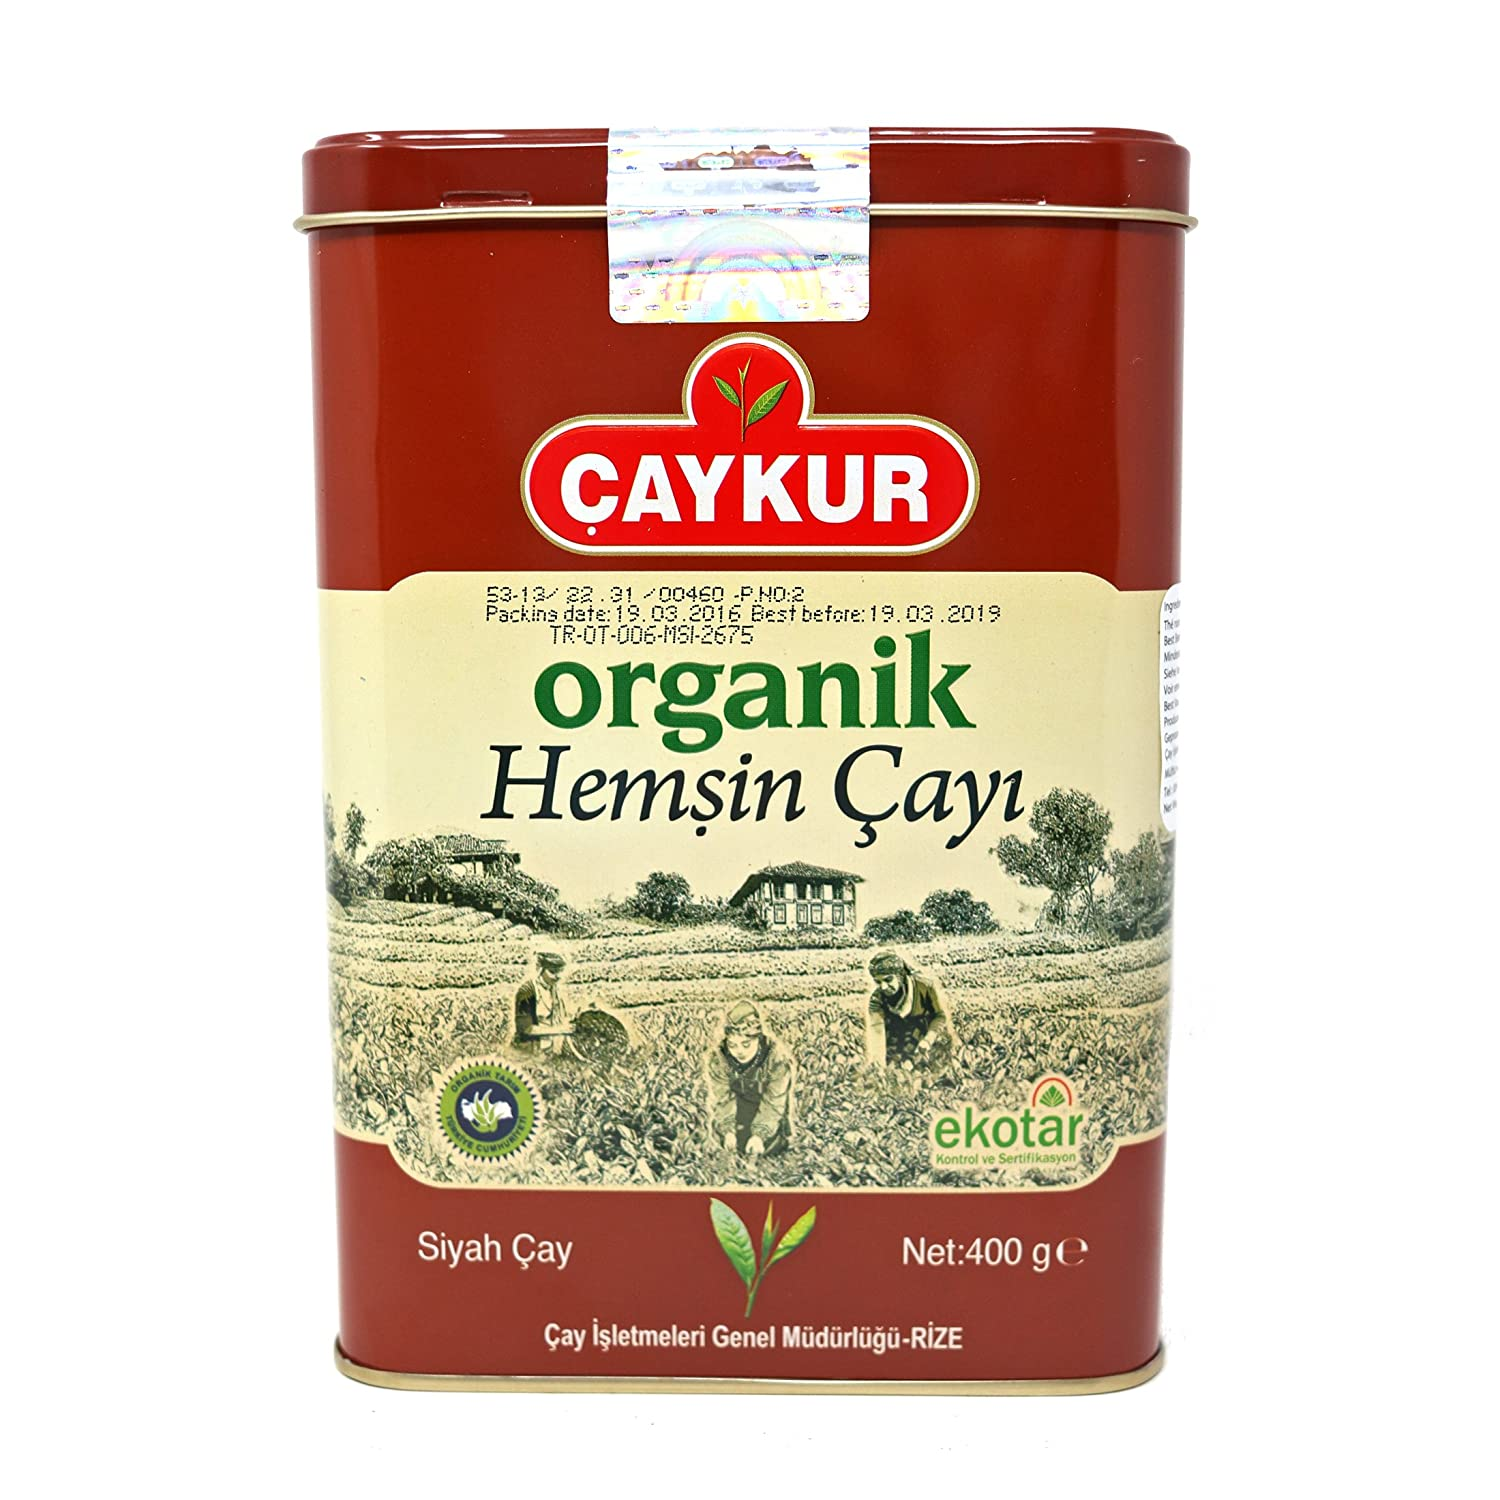 Caykur Organic Hemsin Turkish Tea in Metal Can, 400 Gr - 0.9 Lbs